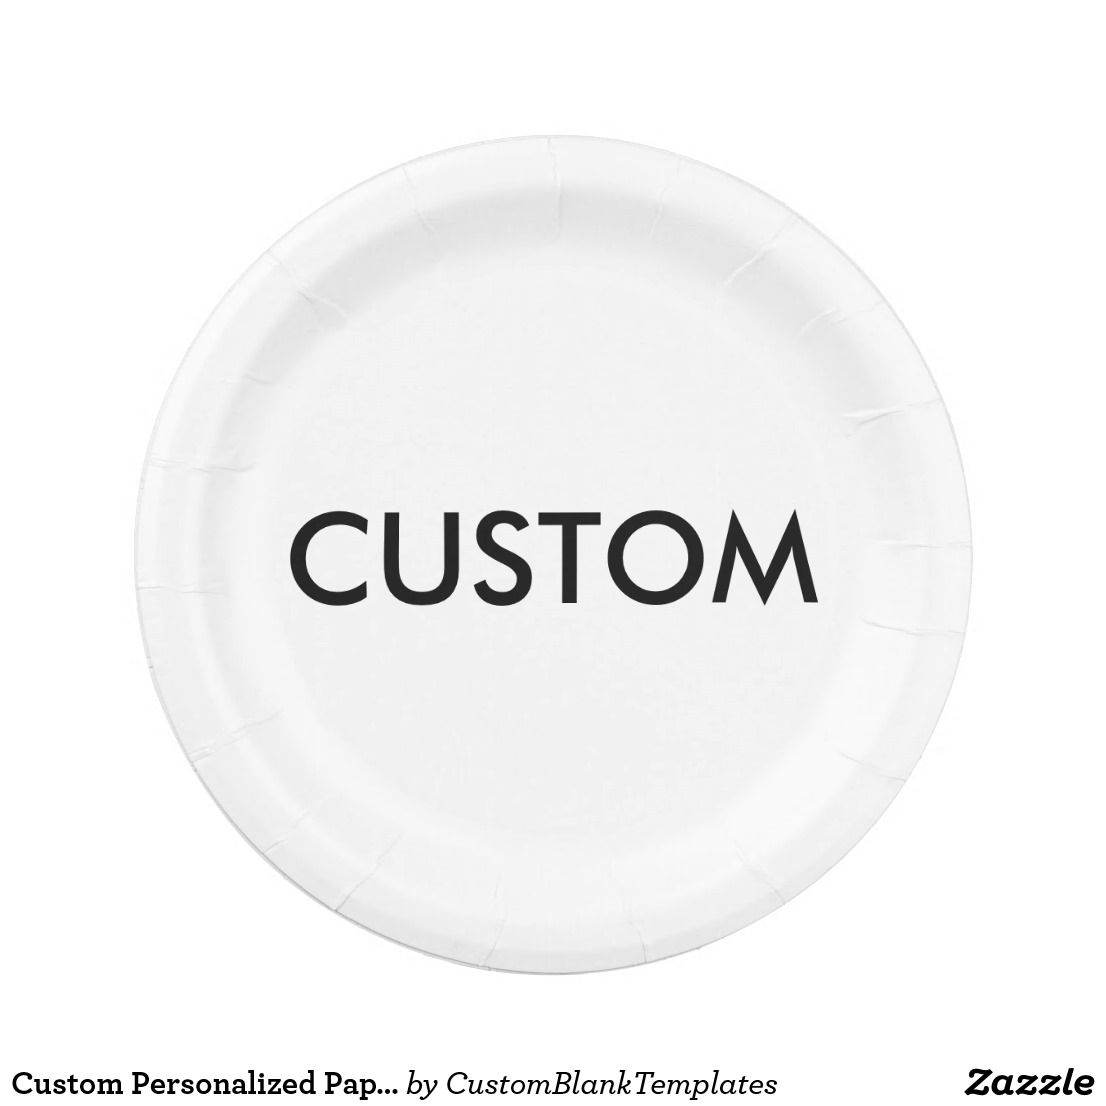 Custom Personalized Paper Plate Blank Template  sc 1 st  Pinterest & Custom Personalized Paper Plate Blank Template | Custom Personalized ...